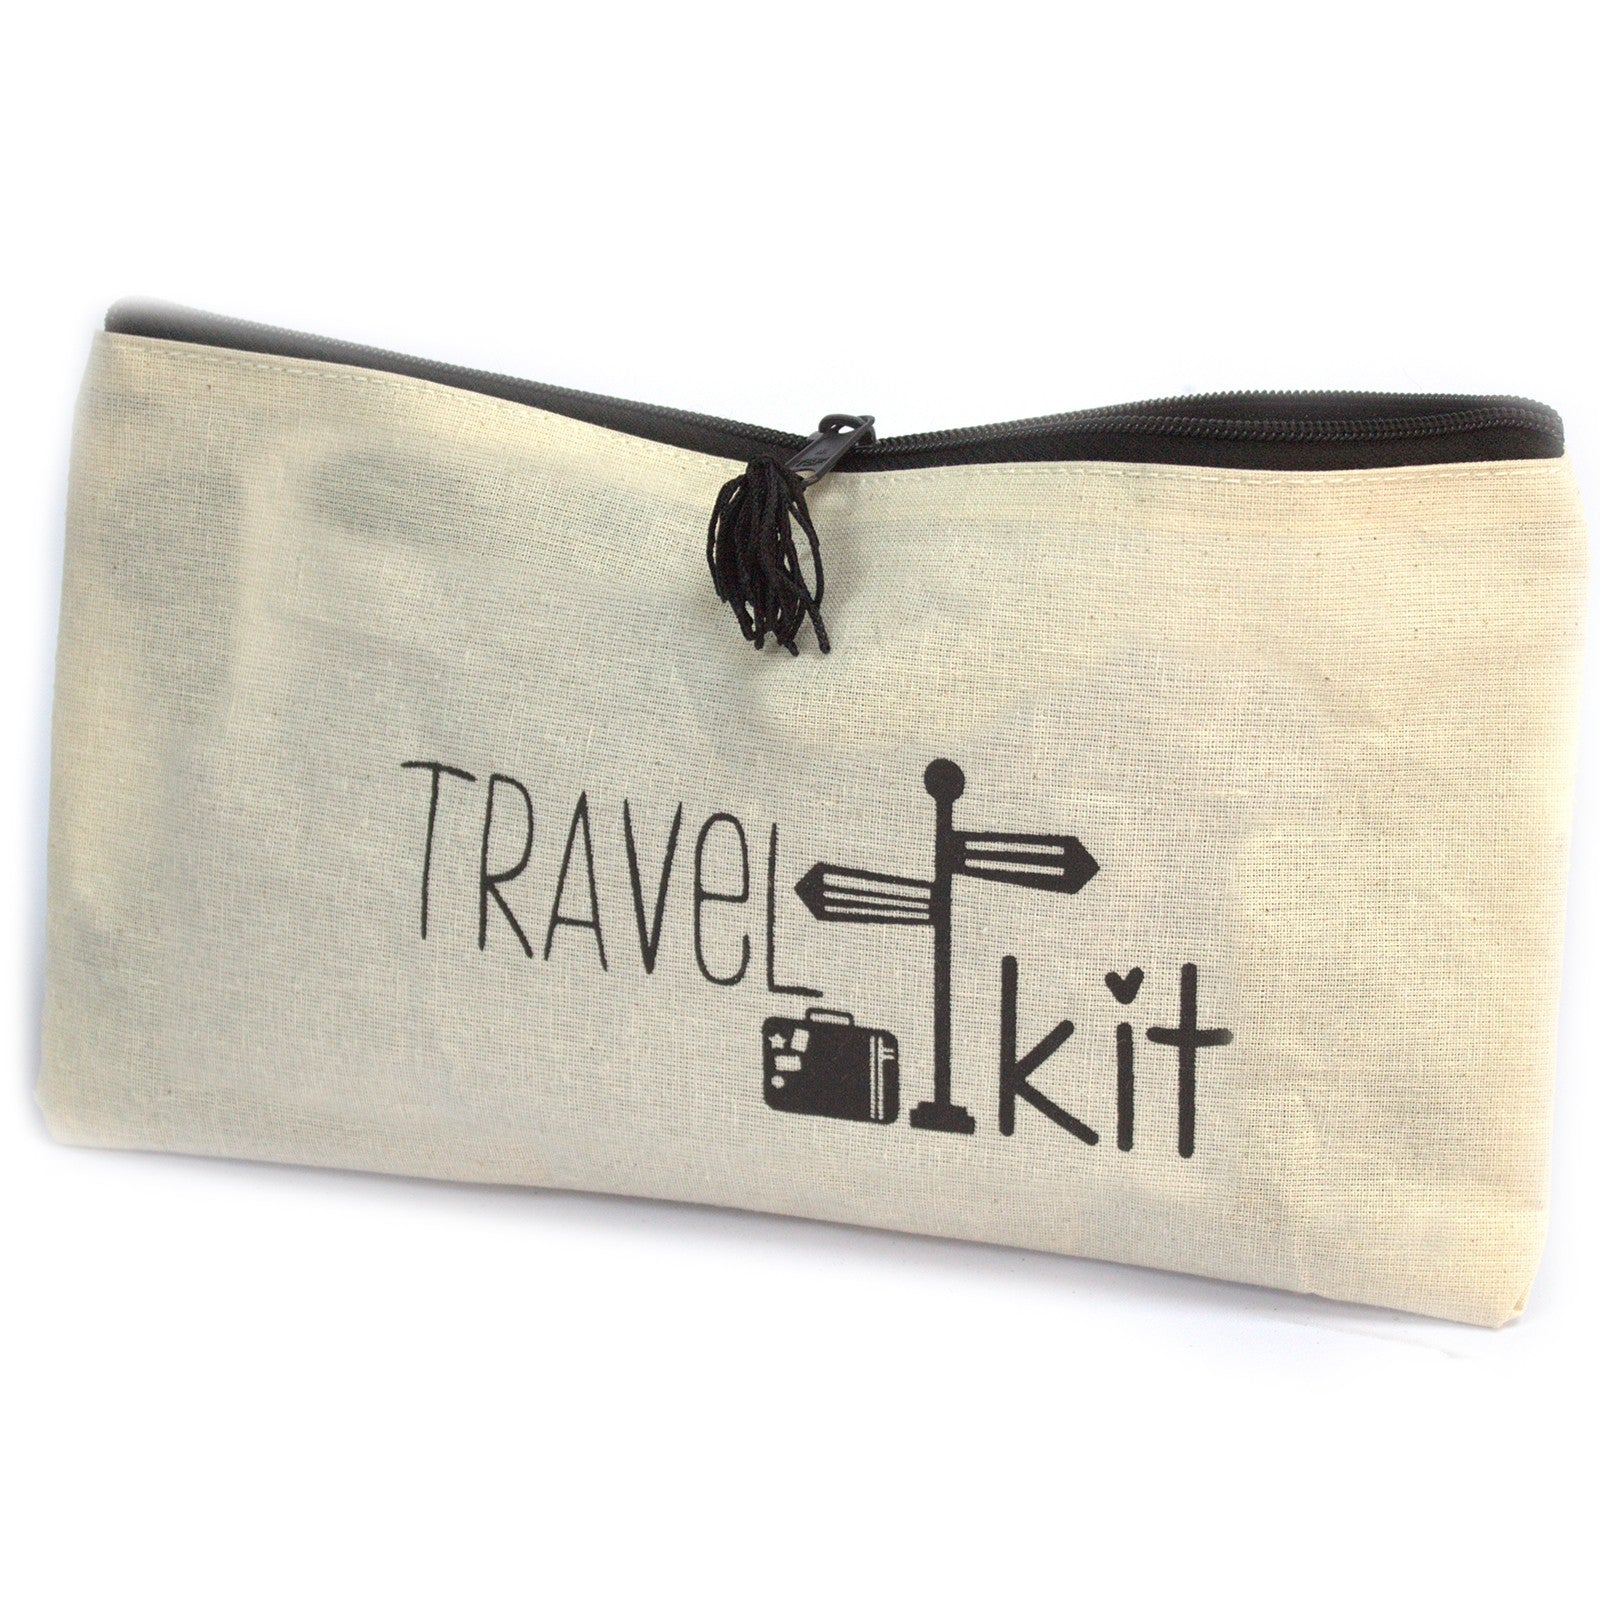 Travel Kit Zipped Pouch - 28x16cm